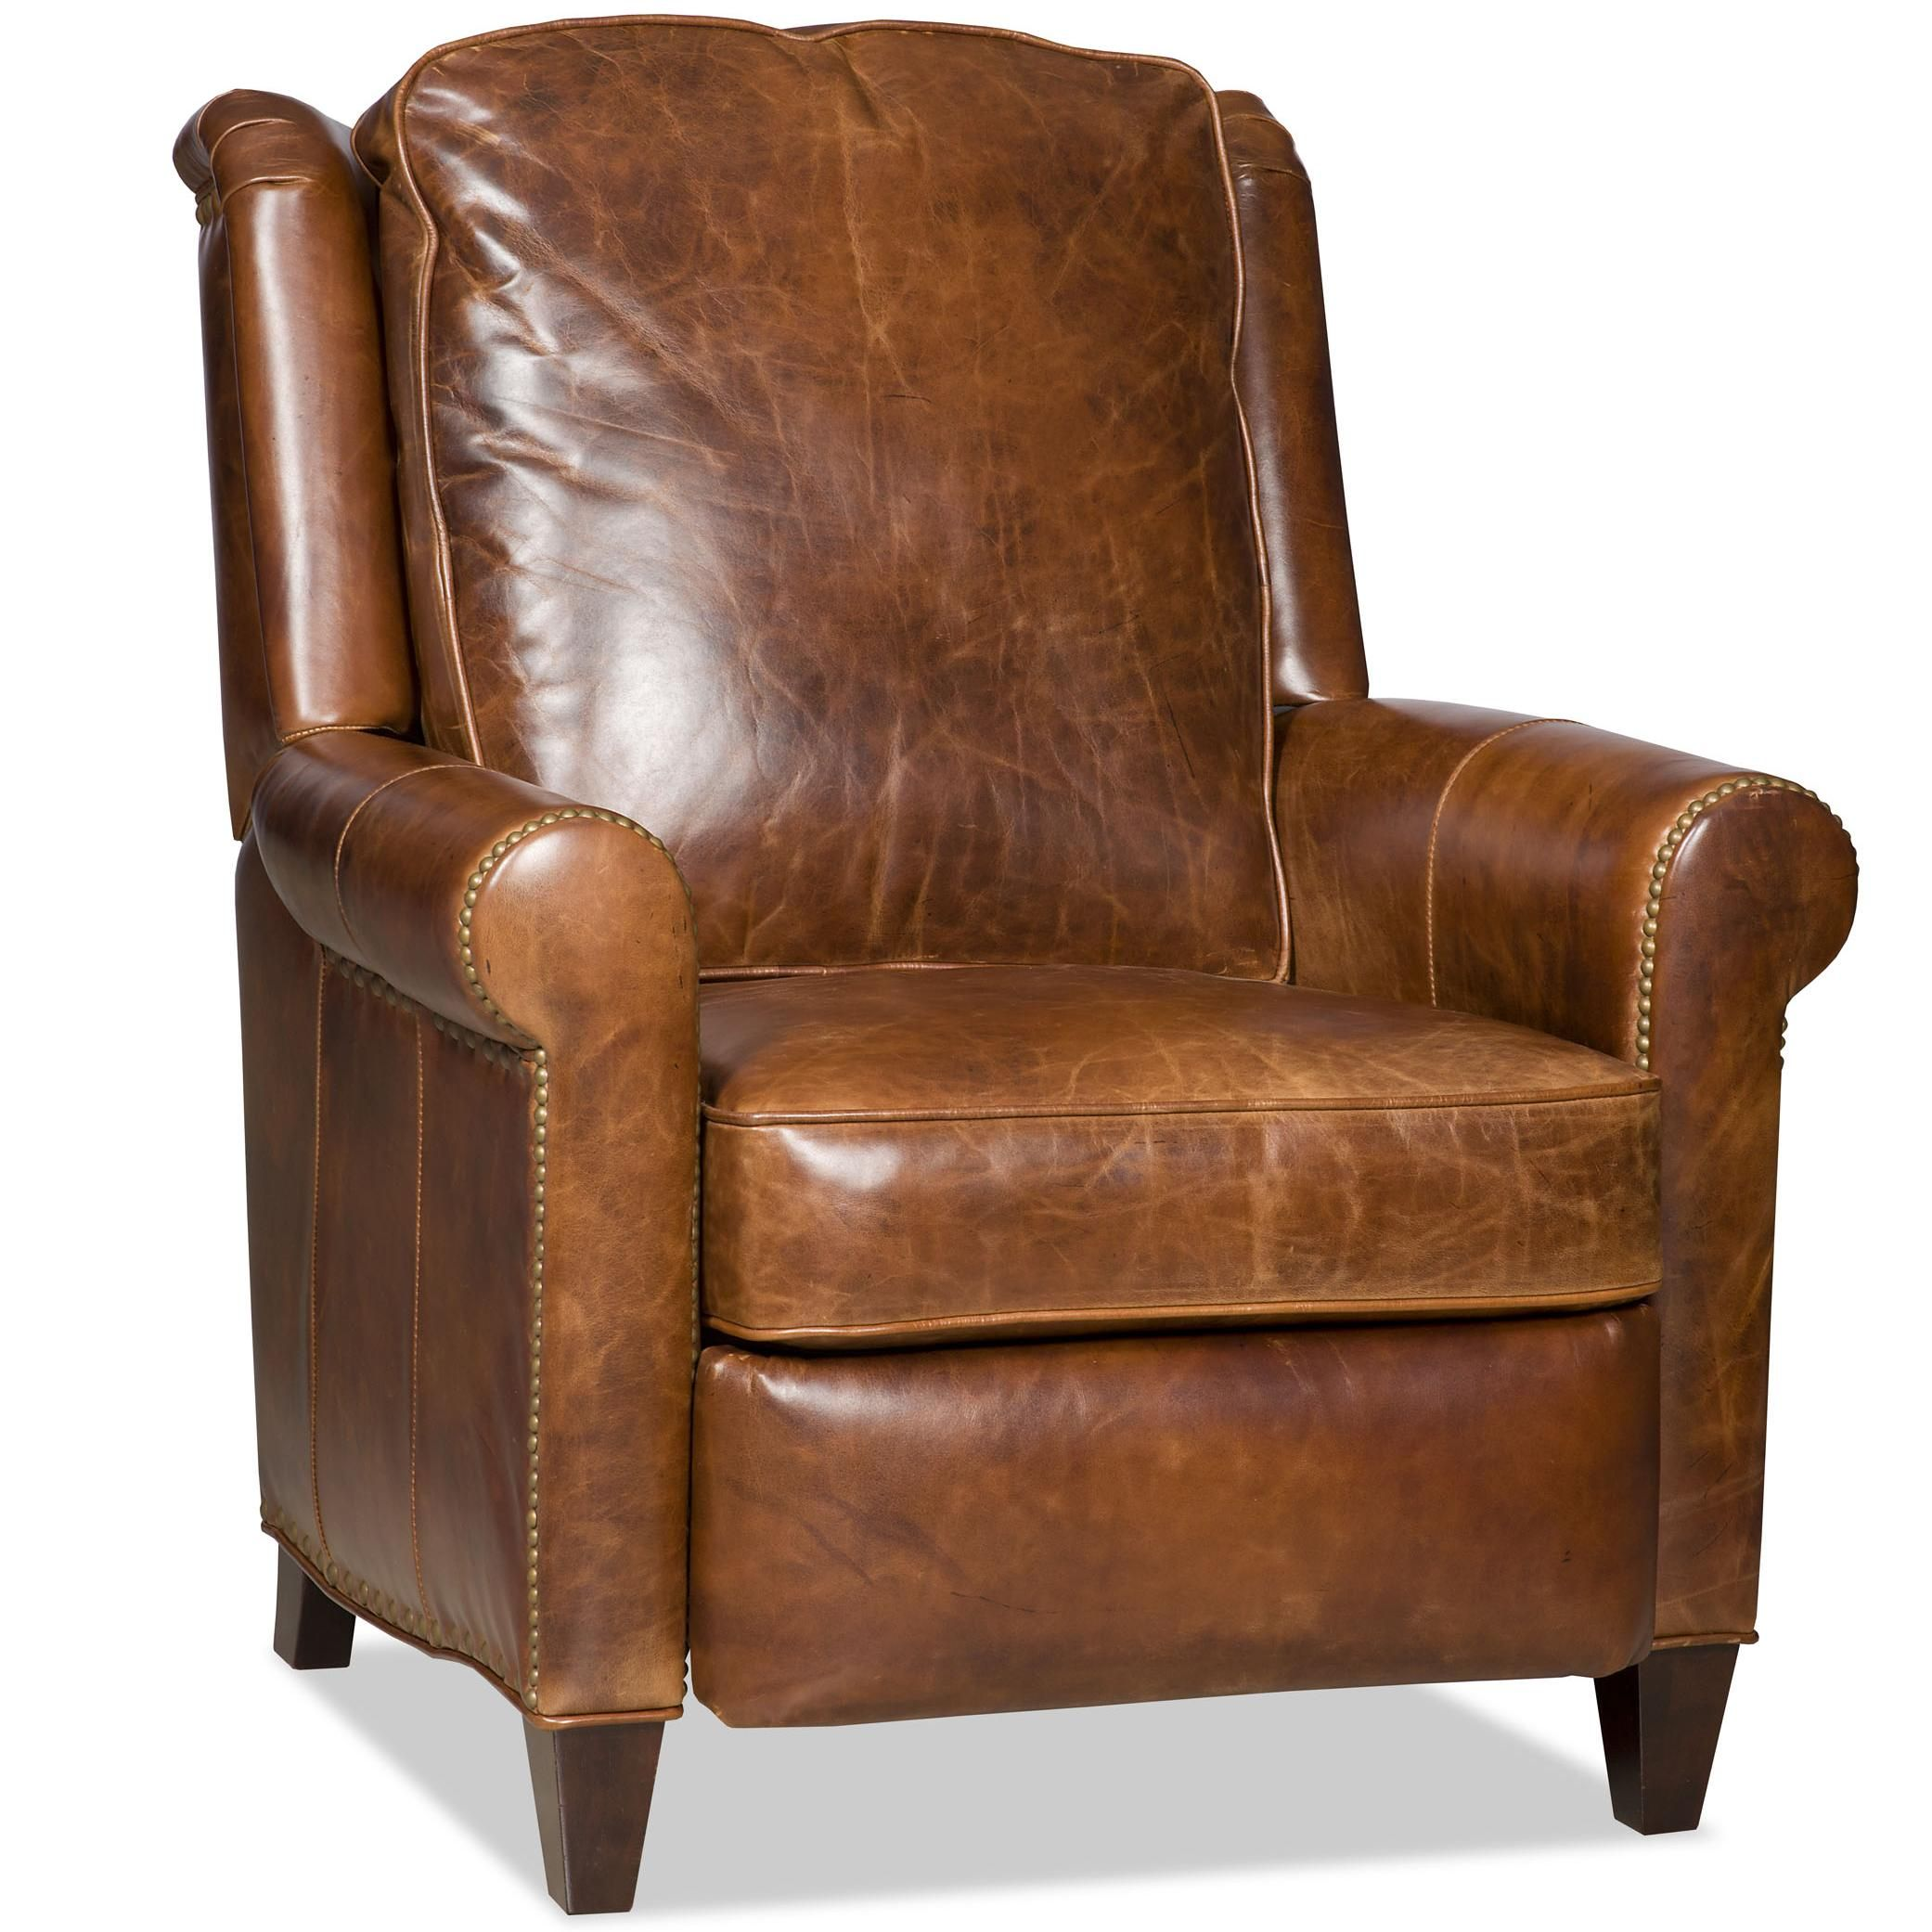 Bradington Young Aubree Leather Recliner Leather Furniture Leather Recliner Chair